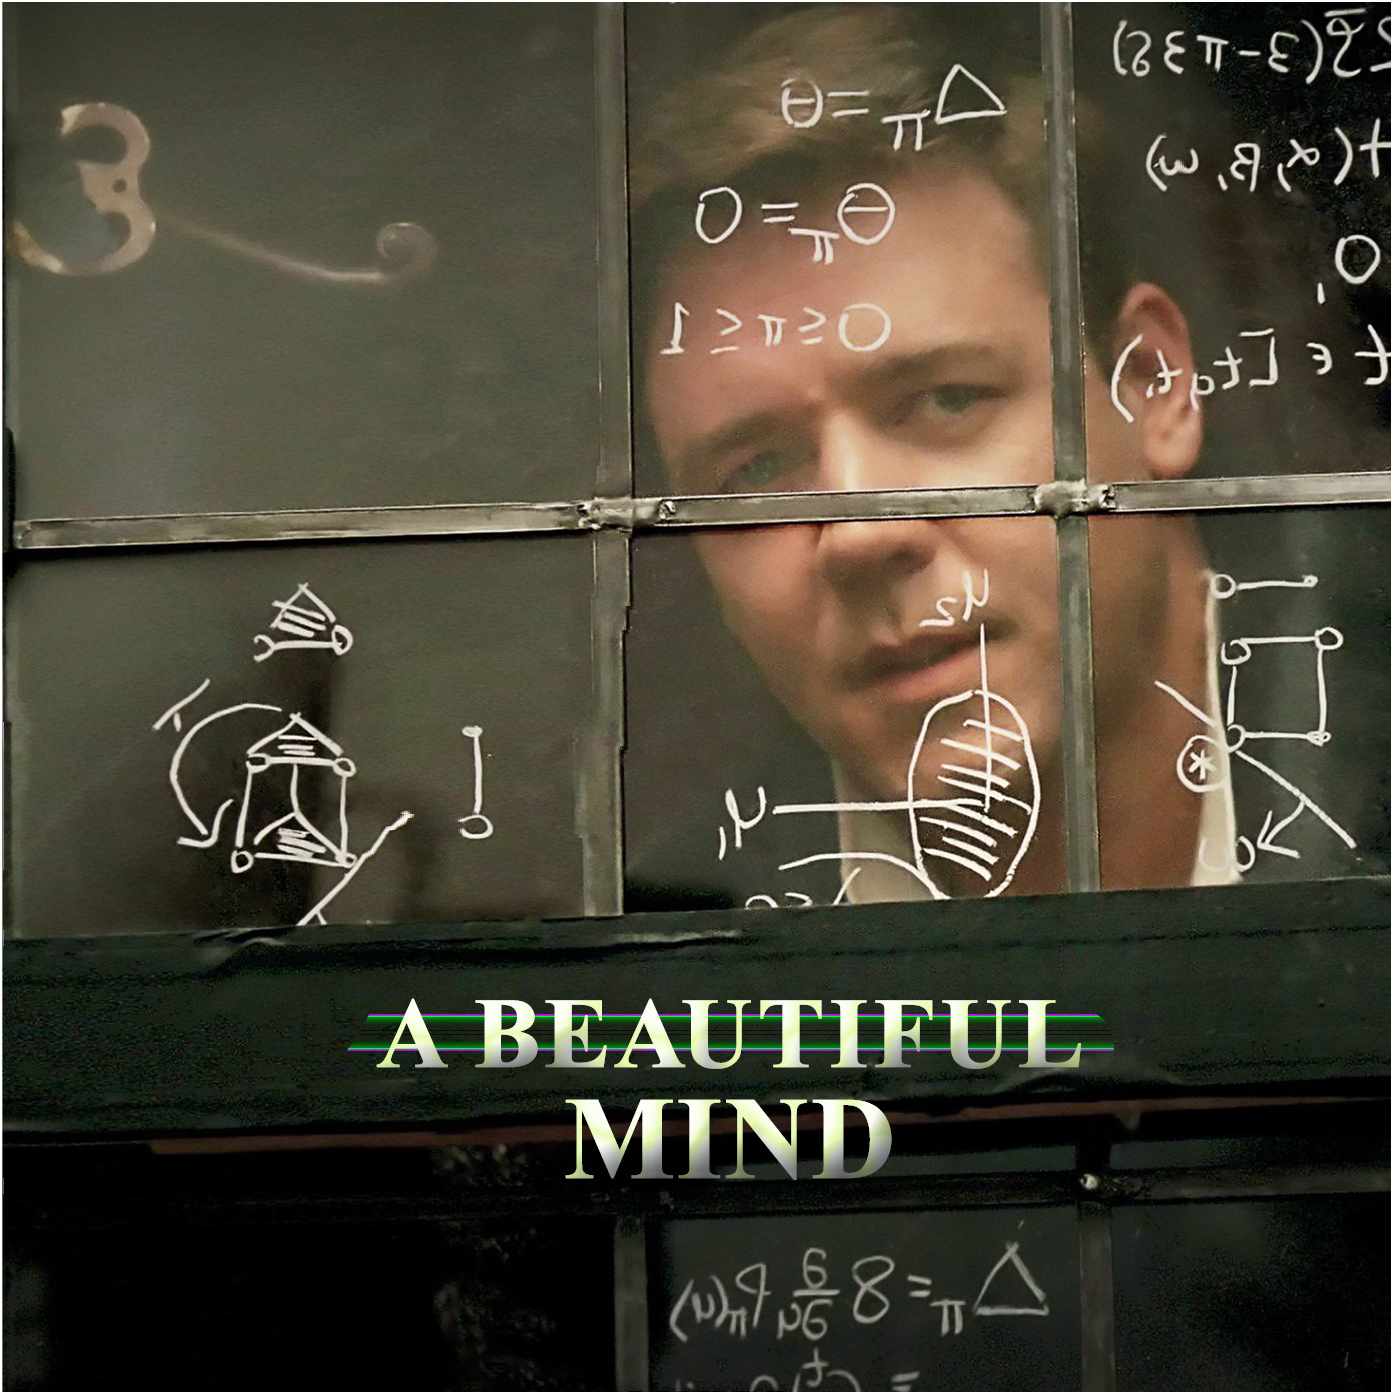 High resolution official theatrical movie poster 1 of 2 for A Beautiful Mind 2001  IMP Awards  2001 Movie Poster Gallery  A Beautiful Mind Poster